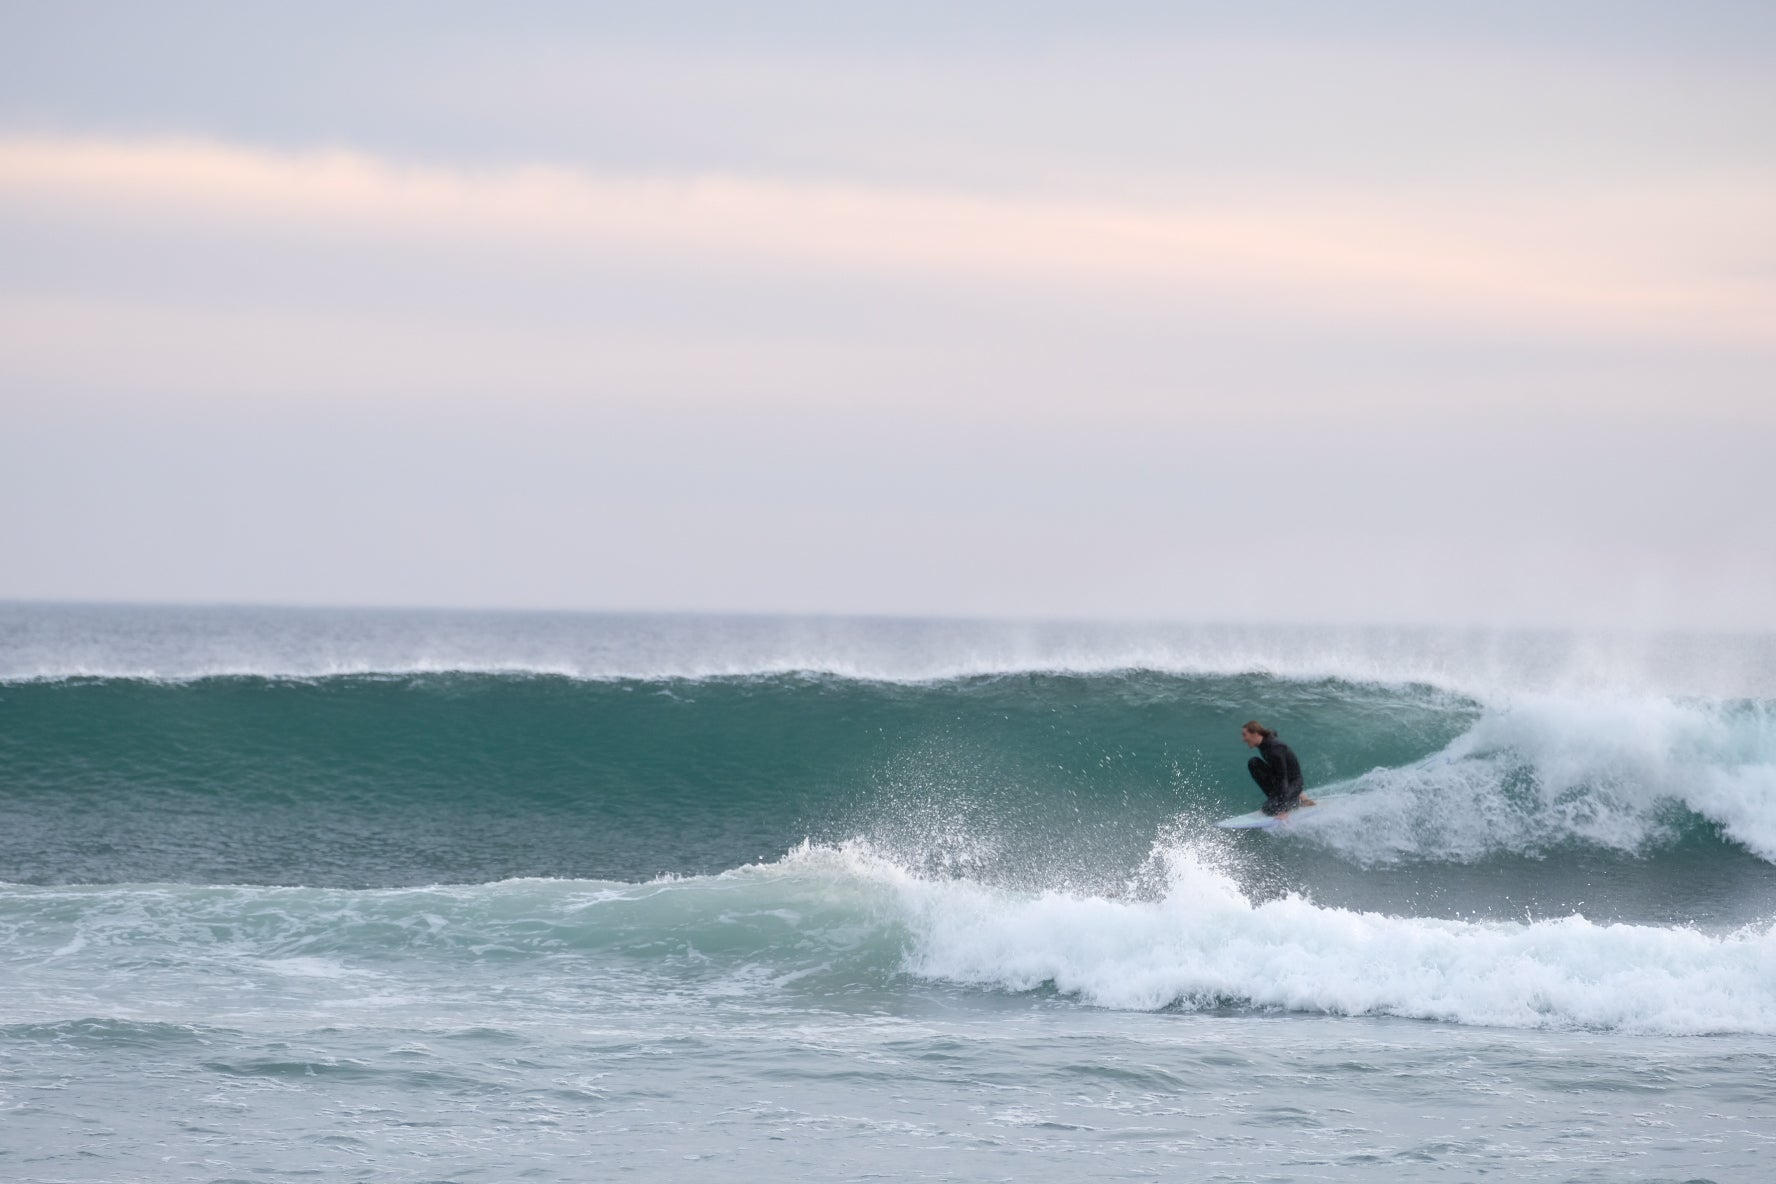 G during a better winter surf